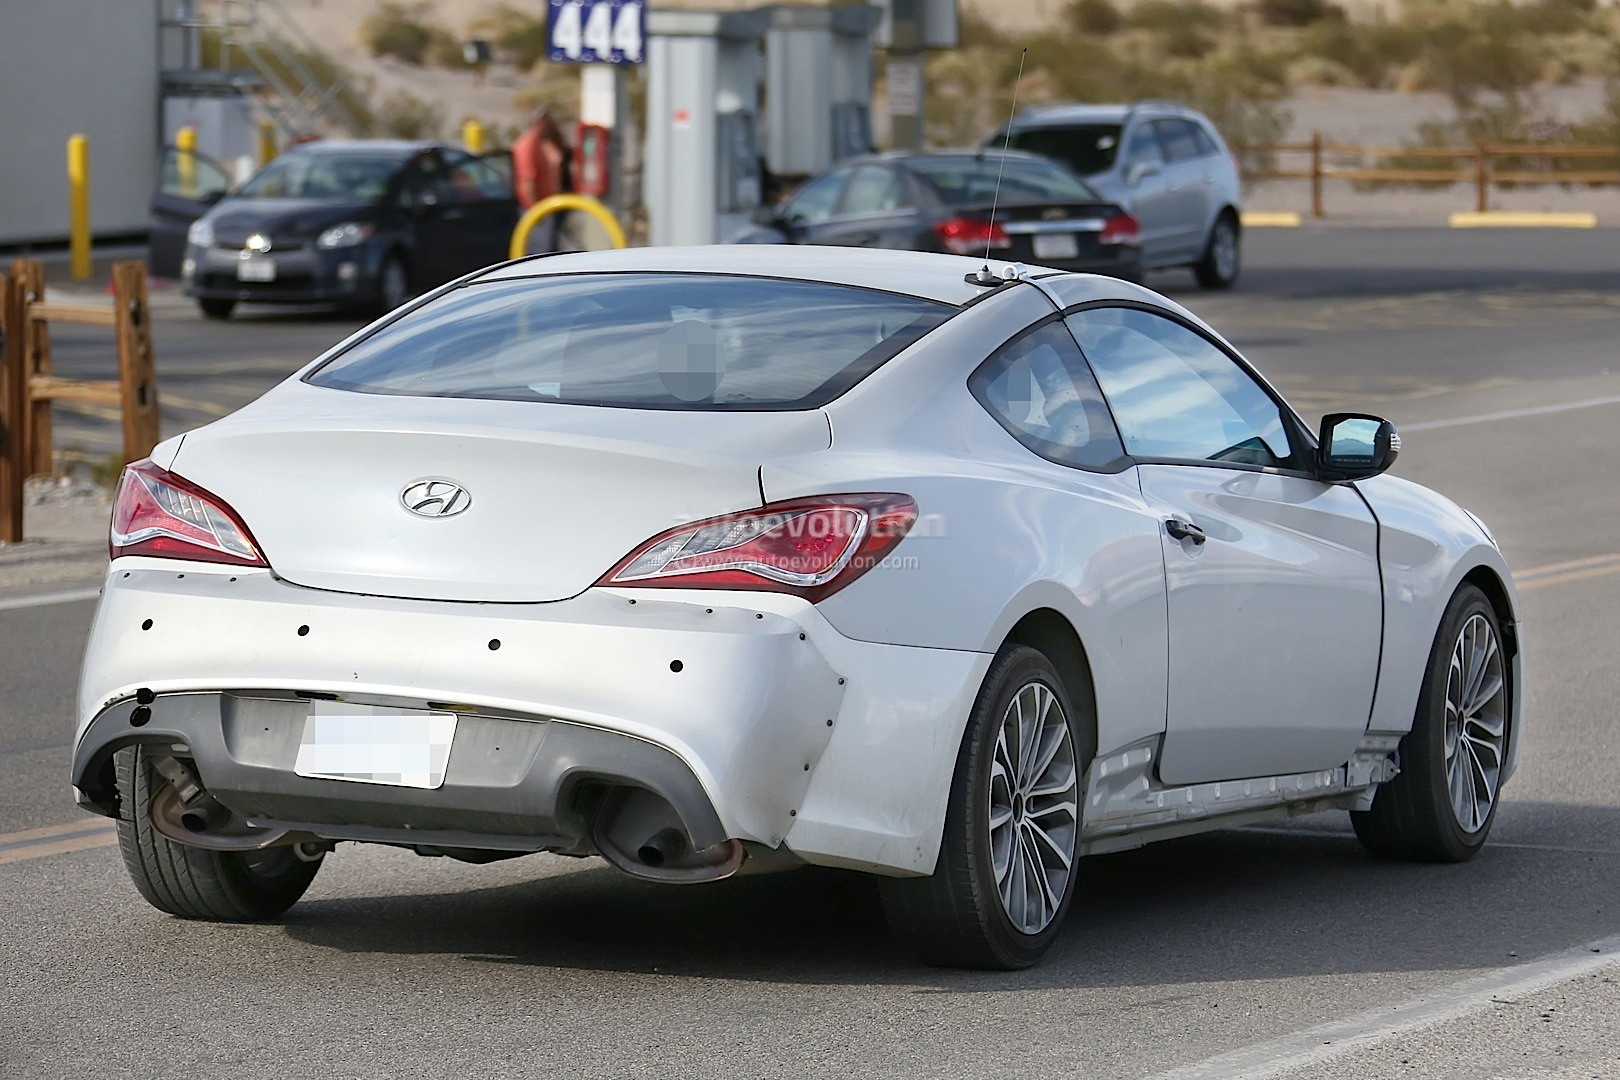 new-2017-hyundai-genesis-coupe-spied-for-the-first-time_9.jpg